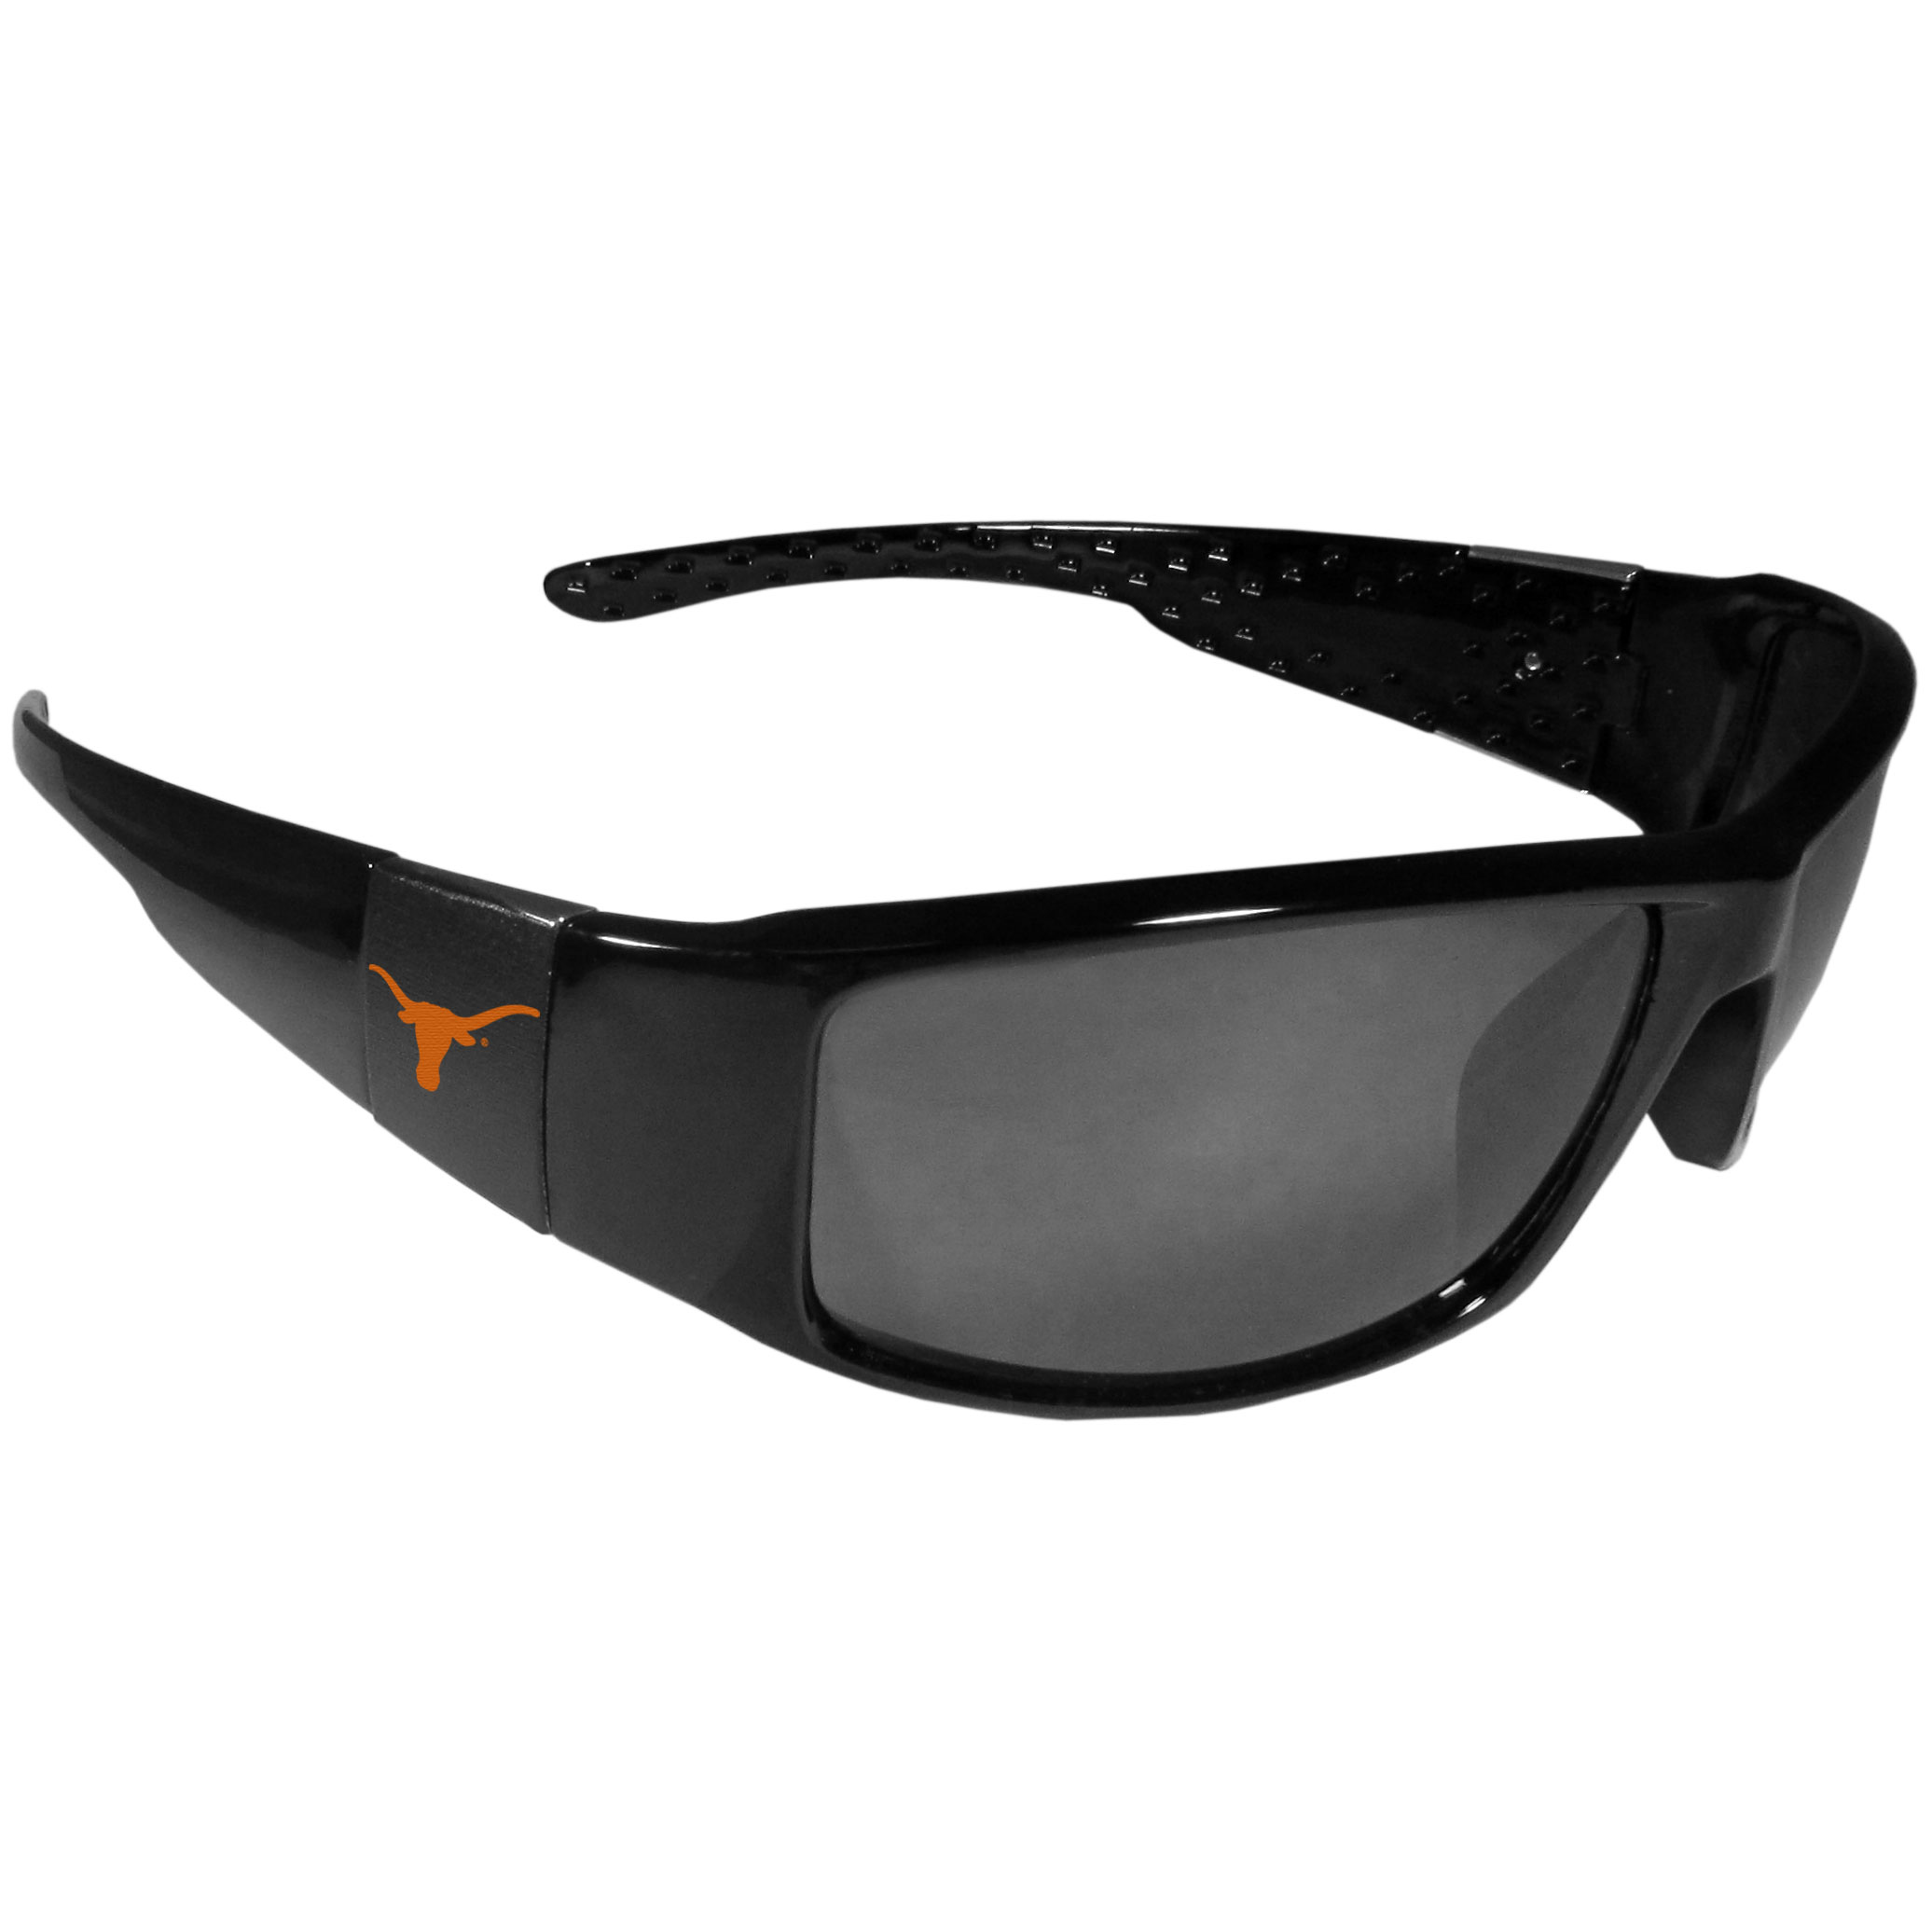 Texas Longhorns Black Wrap Sunglasses - These designer inspired frames have a sleek look in all black with  Texas Longhorns shields on each arm with a printed logo. The shades are perfect for any outdoor activity like; golfing, driving, hiking, fishing or cheering on the team at a tailgating event or at a home game day BBQ with a lens rating of 100% UVA/UVB for maximum UV protection. The high-quality frames are as durable as they are fashionable and with their classic look they are the perfect fan accessory that can be worn everyday for every occasion.